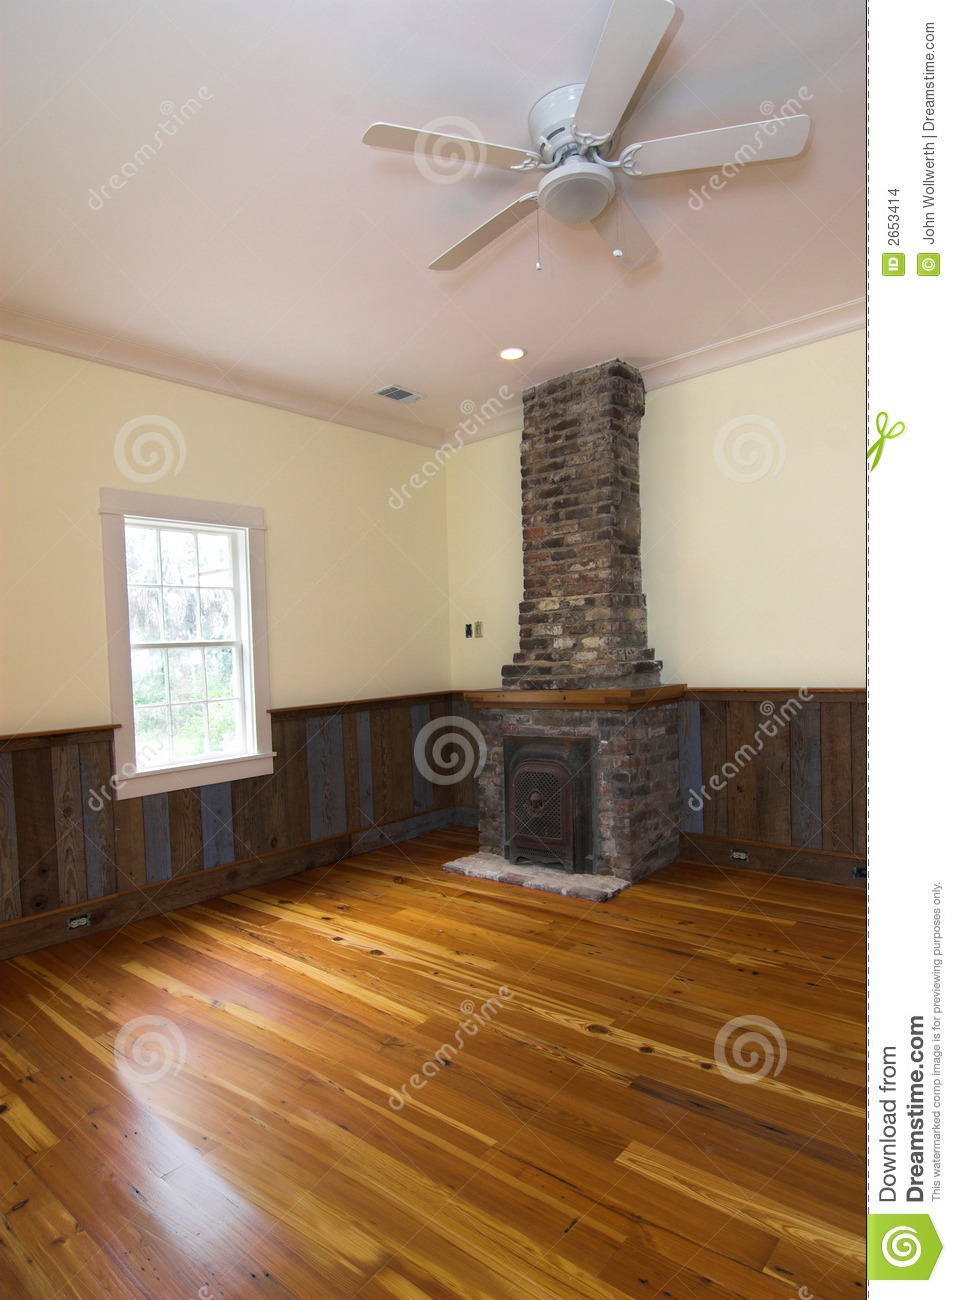 Colonial House With Original Fireplace Restored Interior Shot